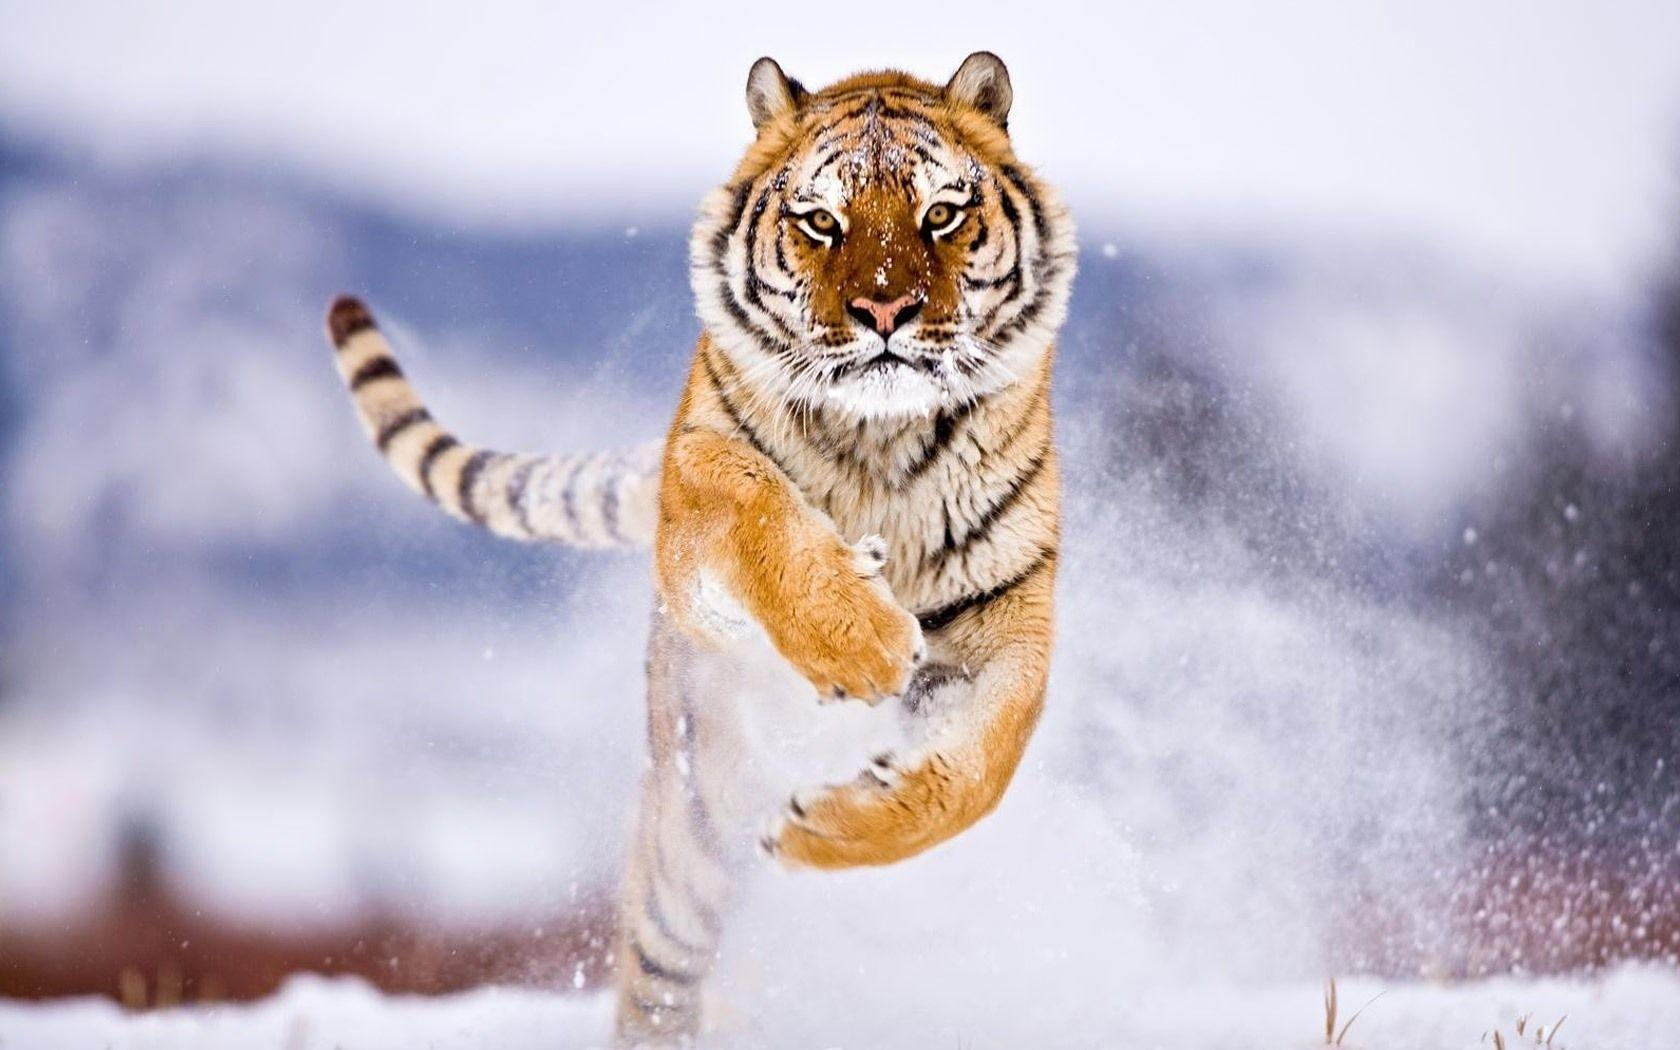 Tiger Wallpaper | Latest Hd Wallpapers